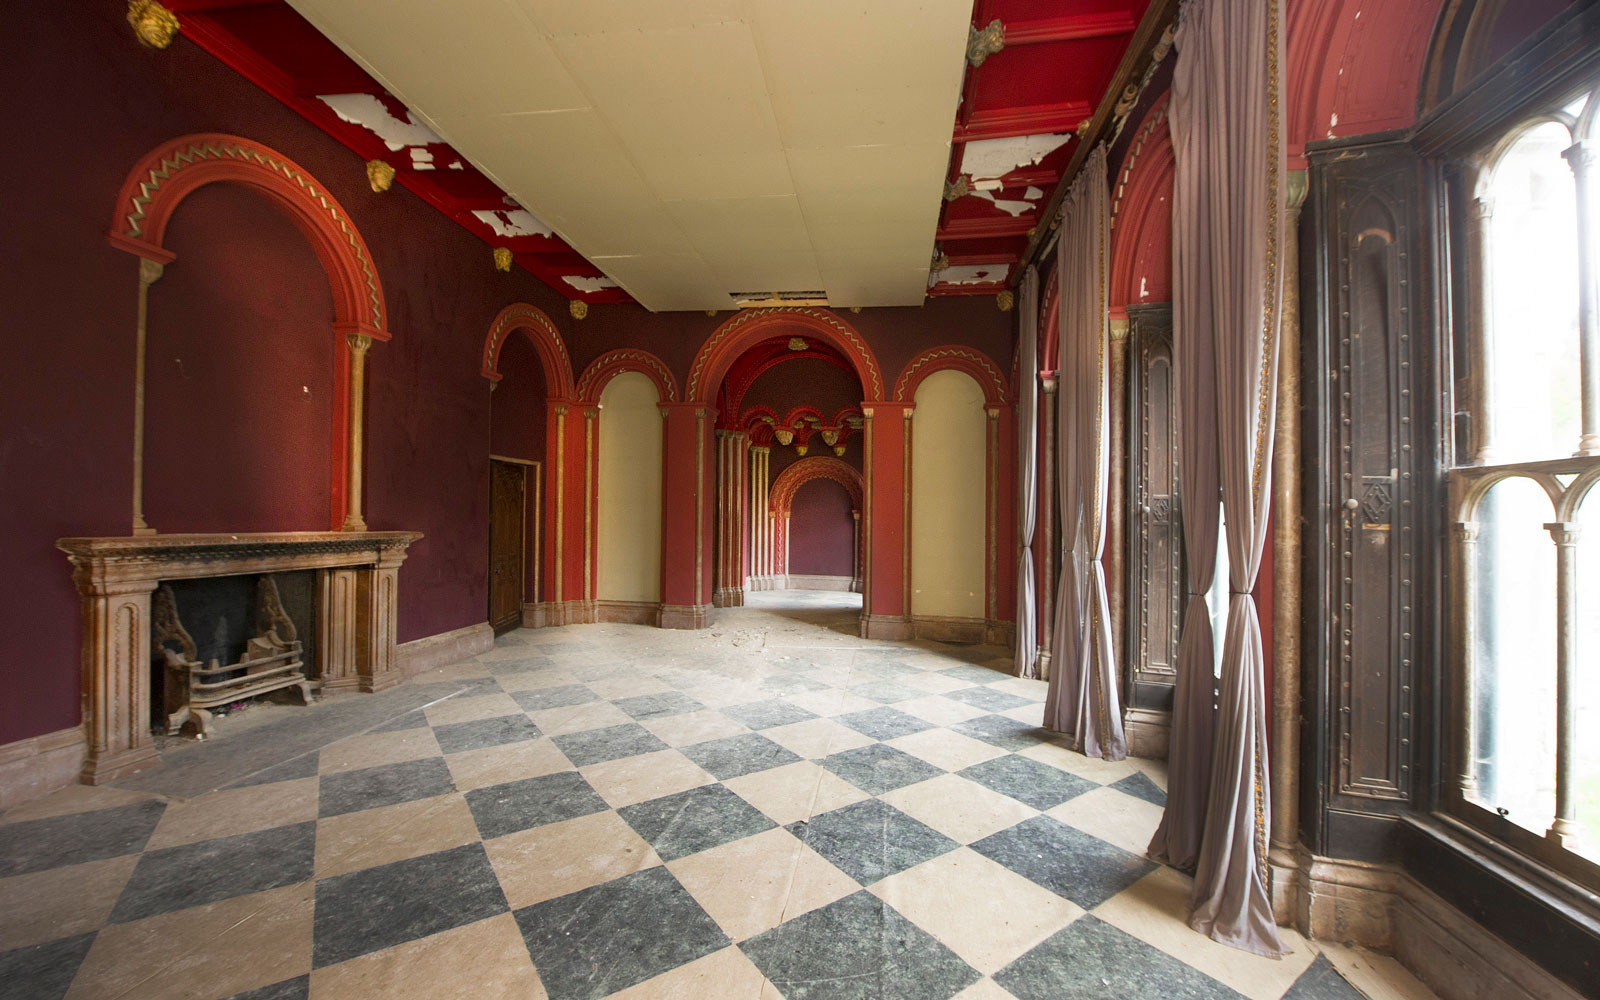 The interiors of Gosford Castle in Northern Ireland.